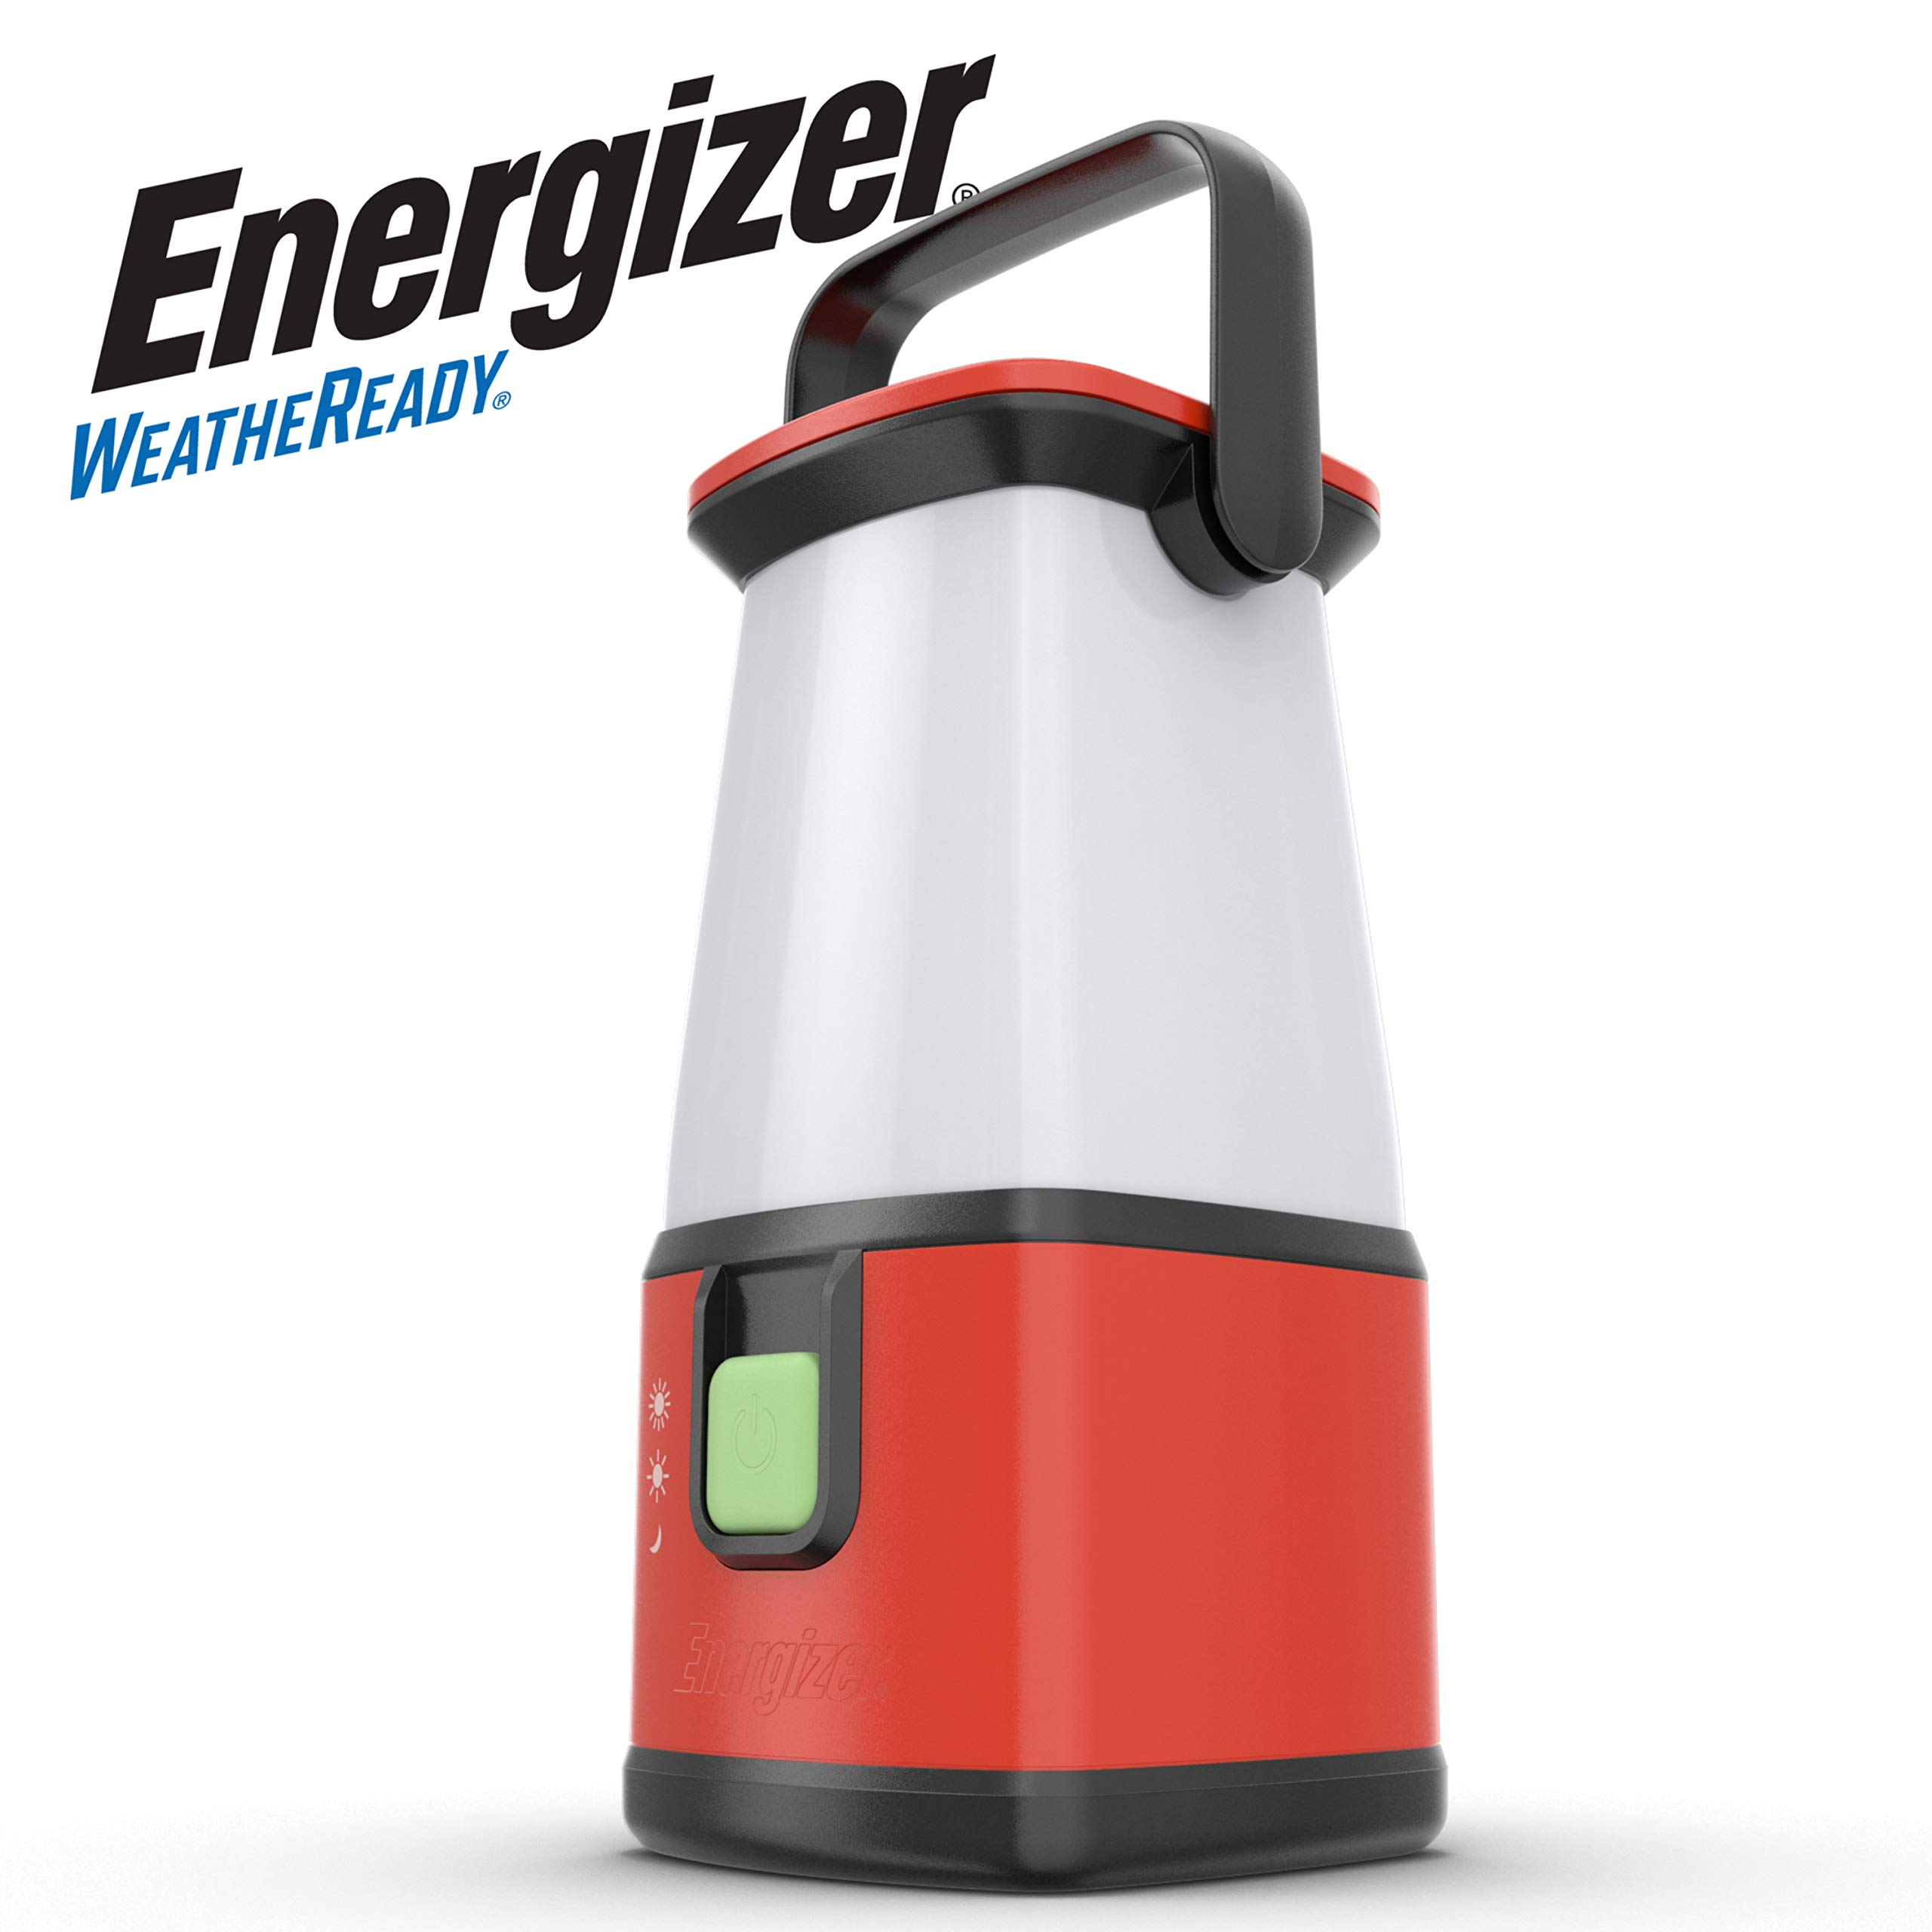 Energizer Camping Lantern Flashlight, Battery Powered LED Lanterns for Camping, Outdoors, Hurricane, Emergency Use, 500 Lumens Water Resistant Camping Light by Energizer Lighting